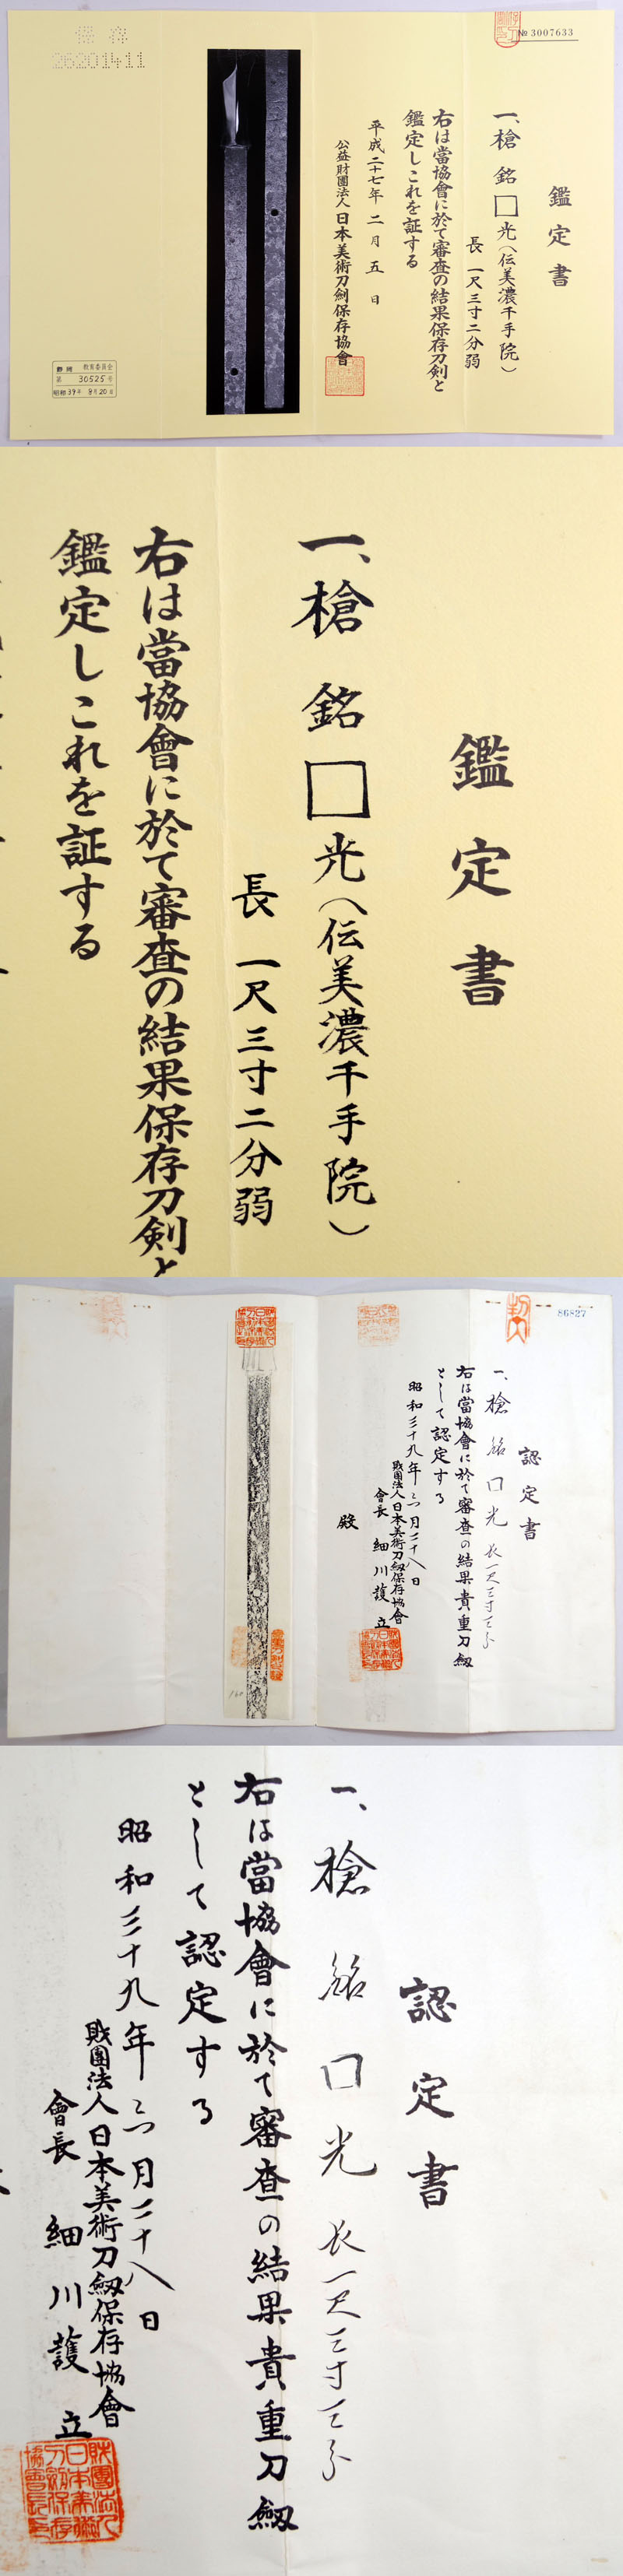 □光(伝美濃千手院) Picture of Certificate